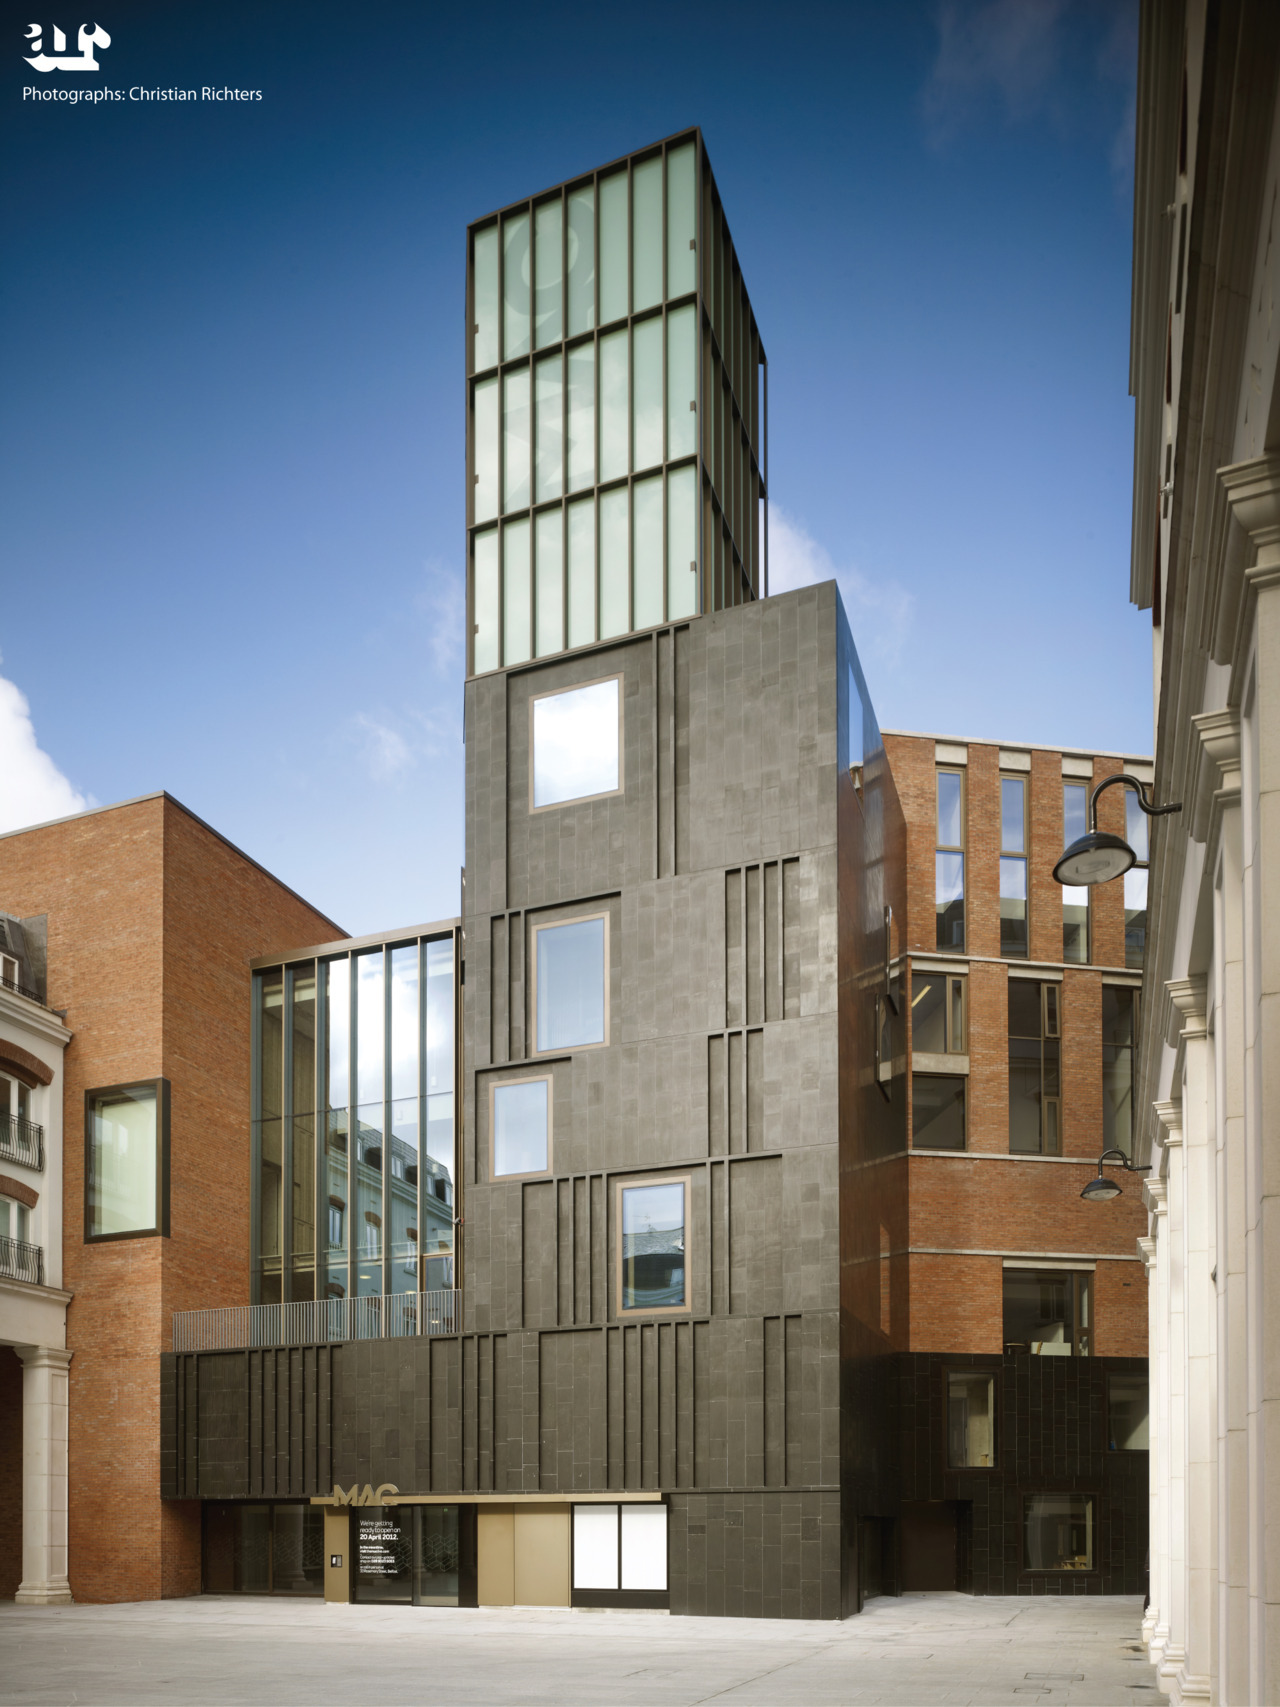 andgatherer:  Hall, McKight Architects - MAC, Belfast